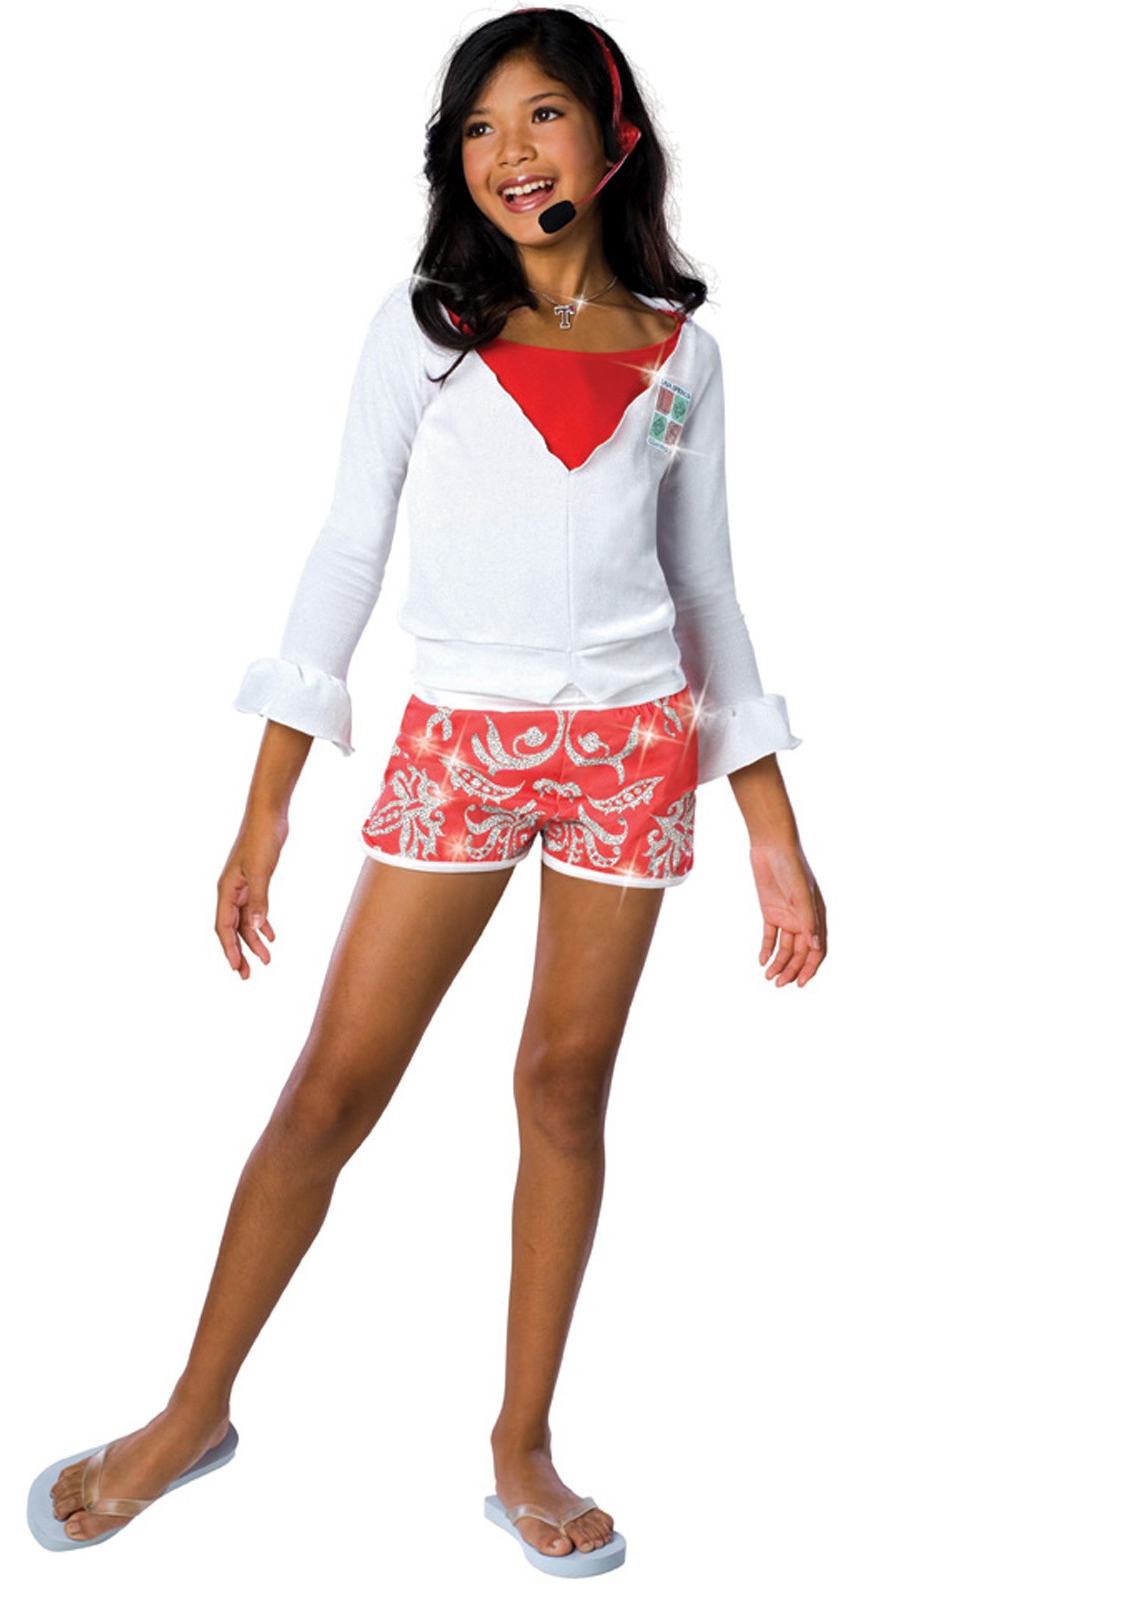 Gabriella Lifeguard Costume Fancy Dress Costumes Amp Party